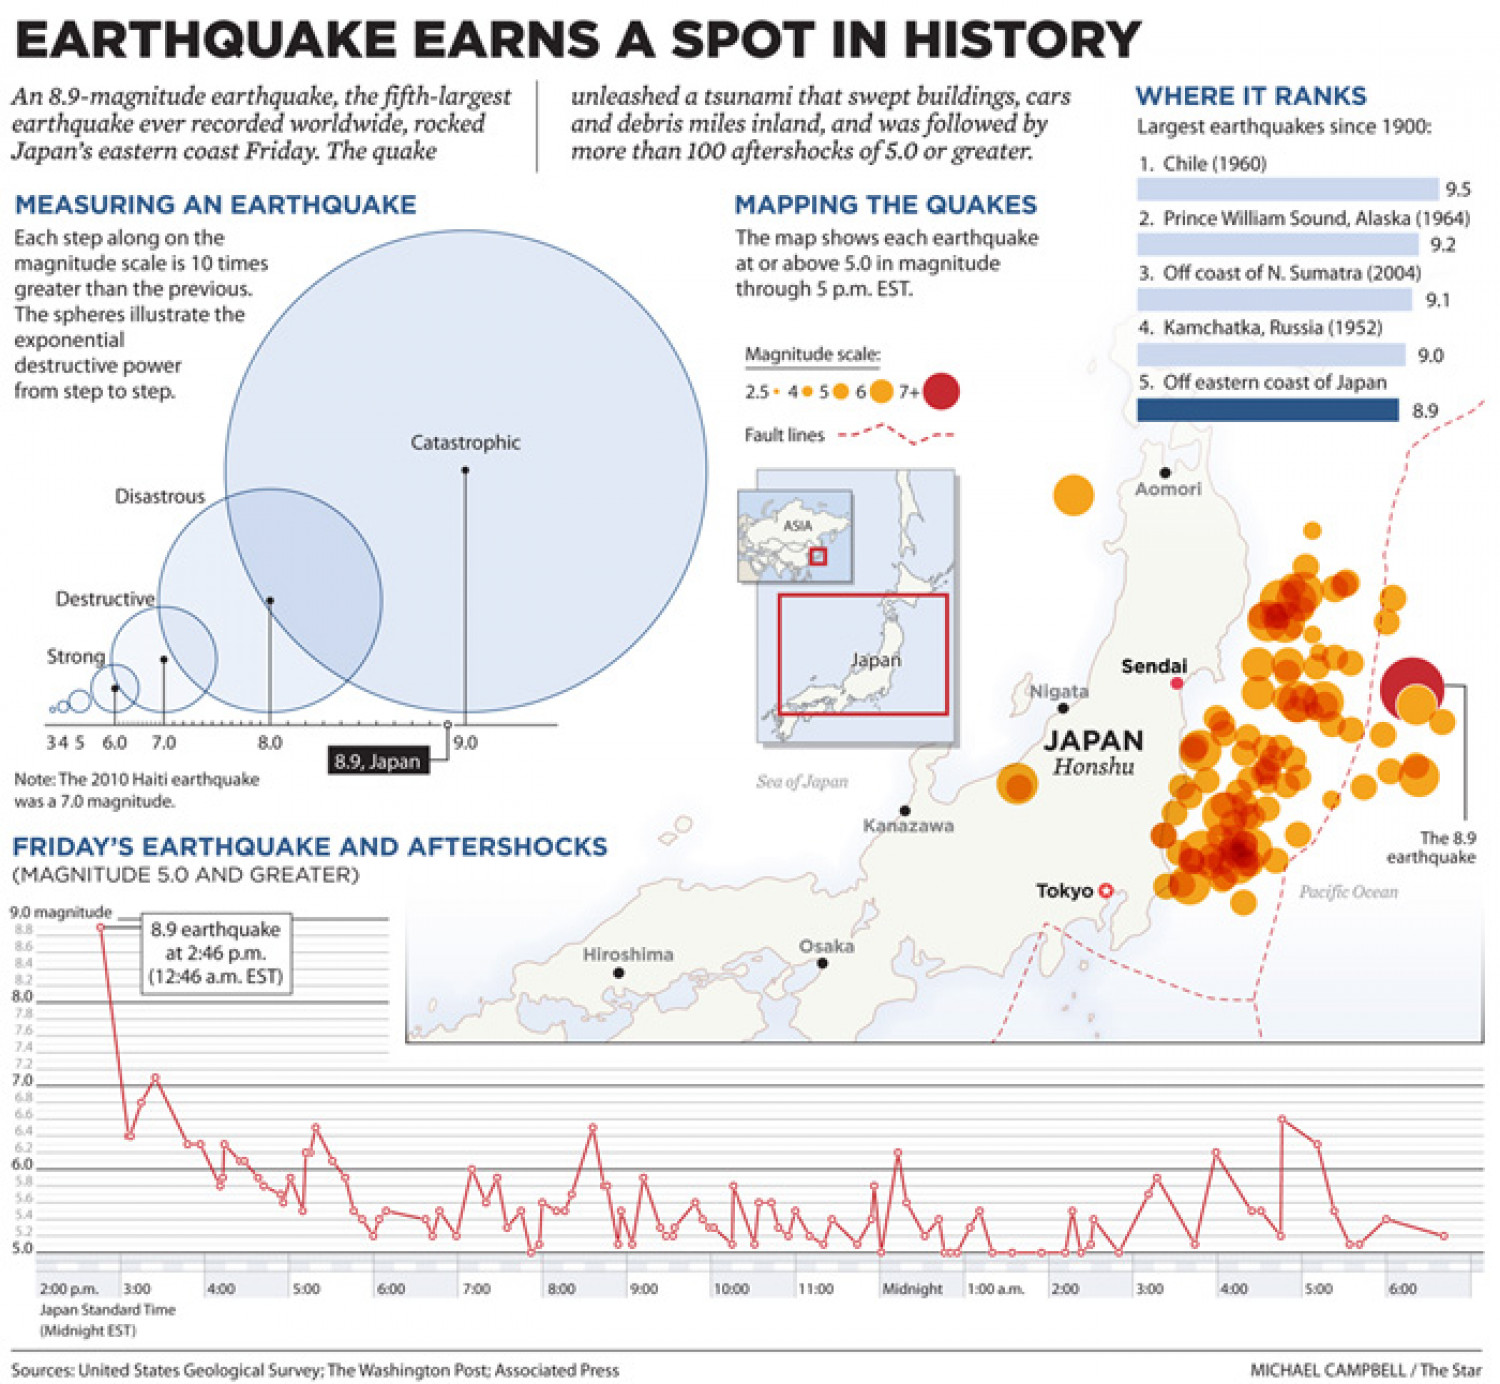 Japan Earthquake Earns Spot in History Infographic